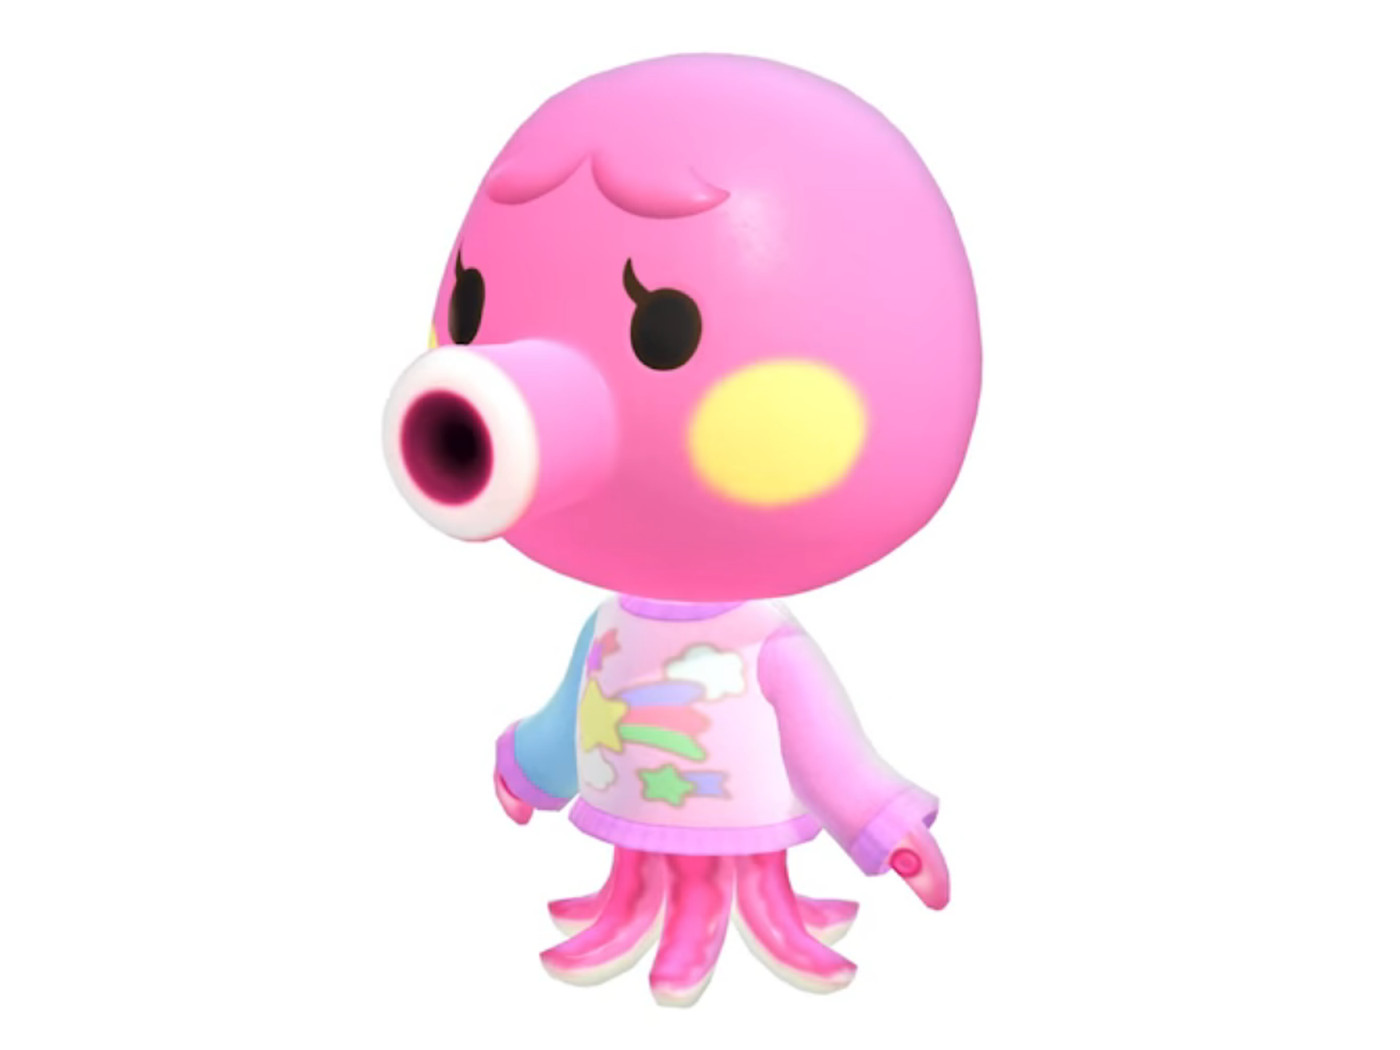 Animal Crossing New Horizons Villagers Have A Whole New Layer Of